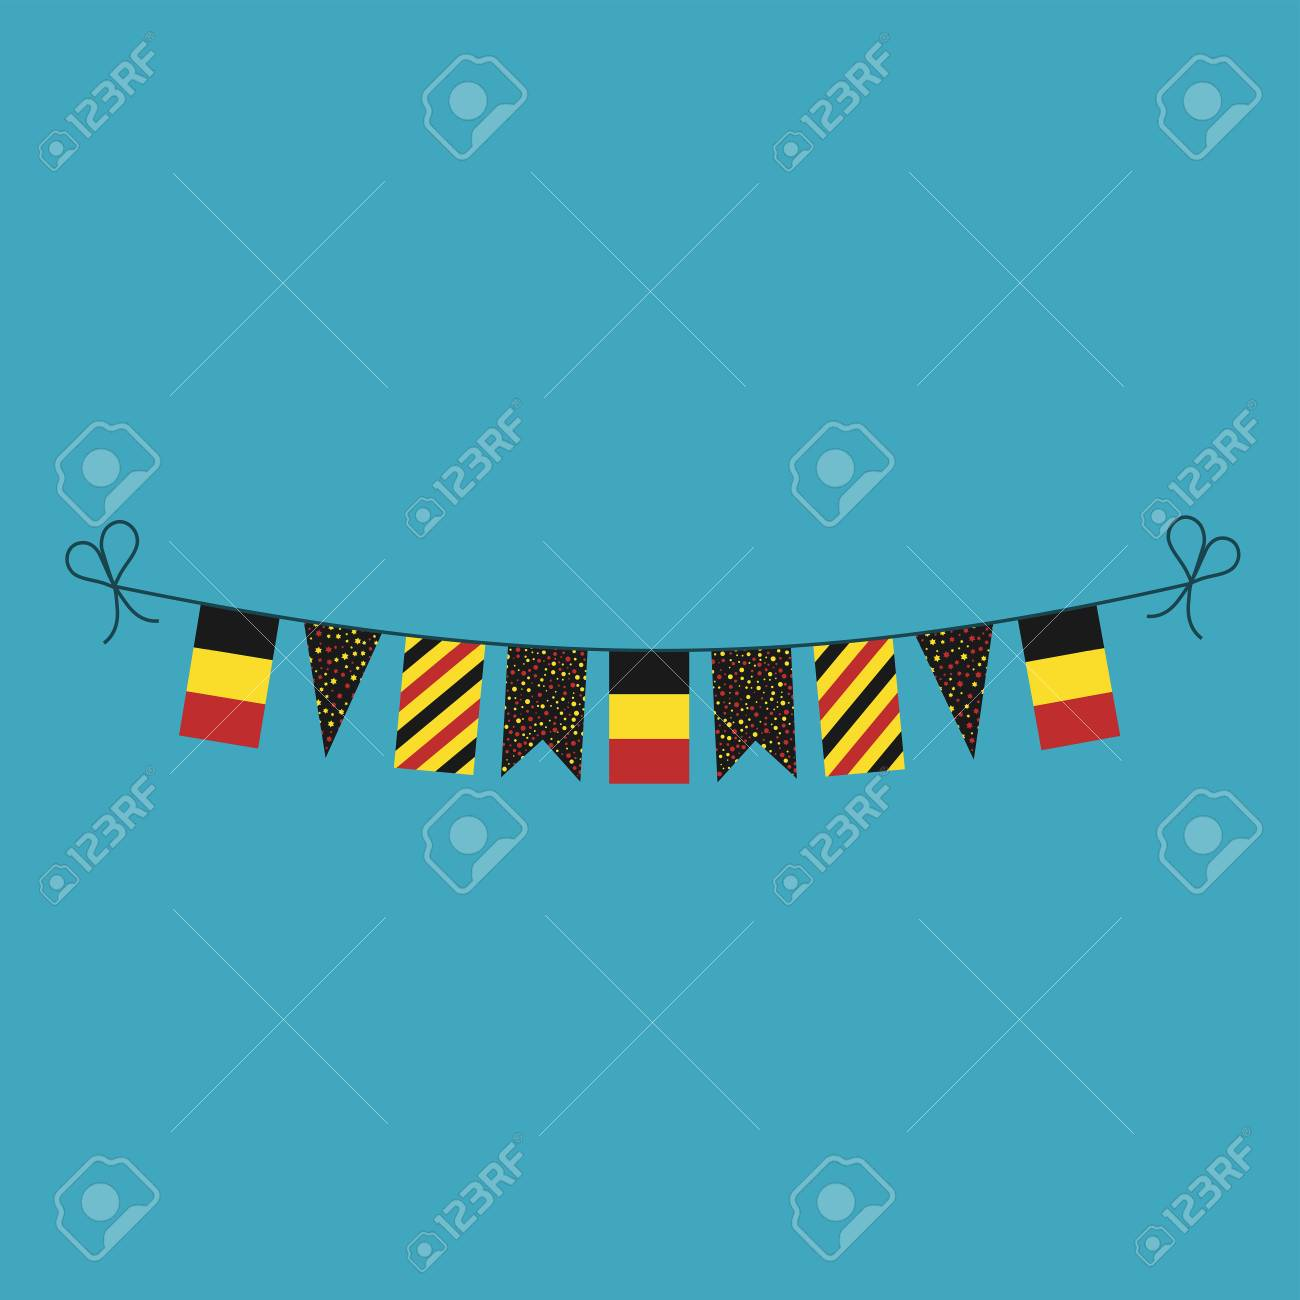 Decorations bunting flags for Belgium national day holiday in flat design. Independence day or National day holiday concept. - 126462009